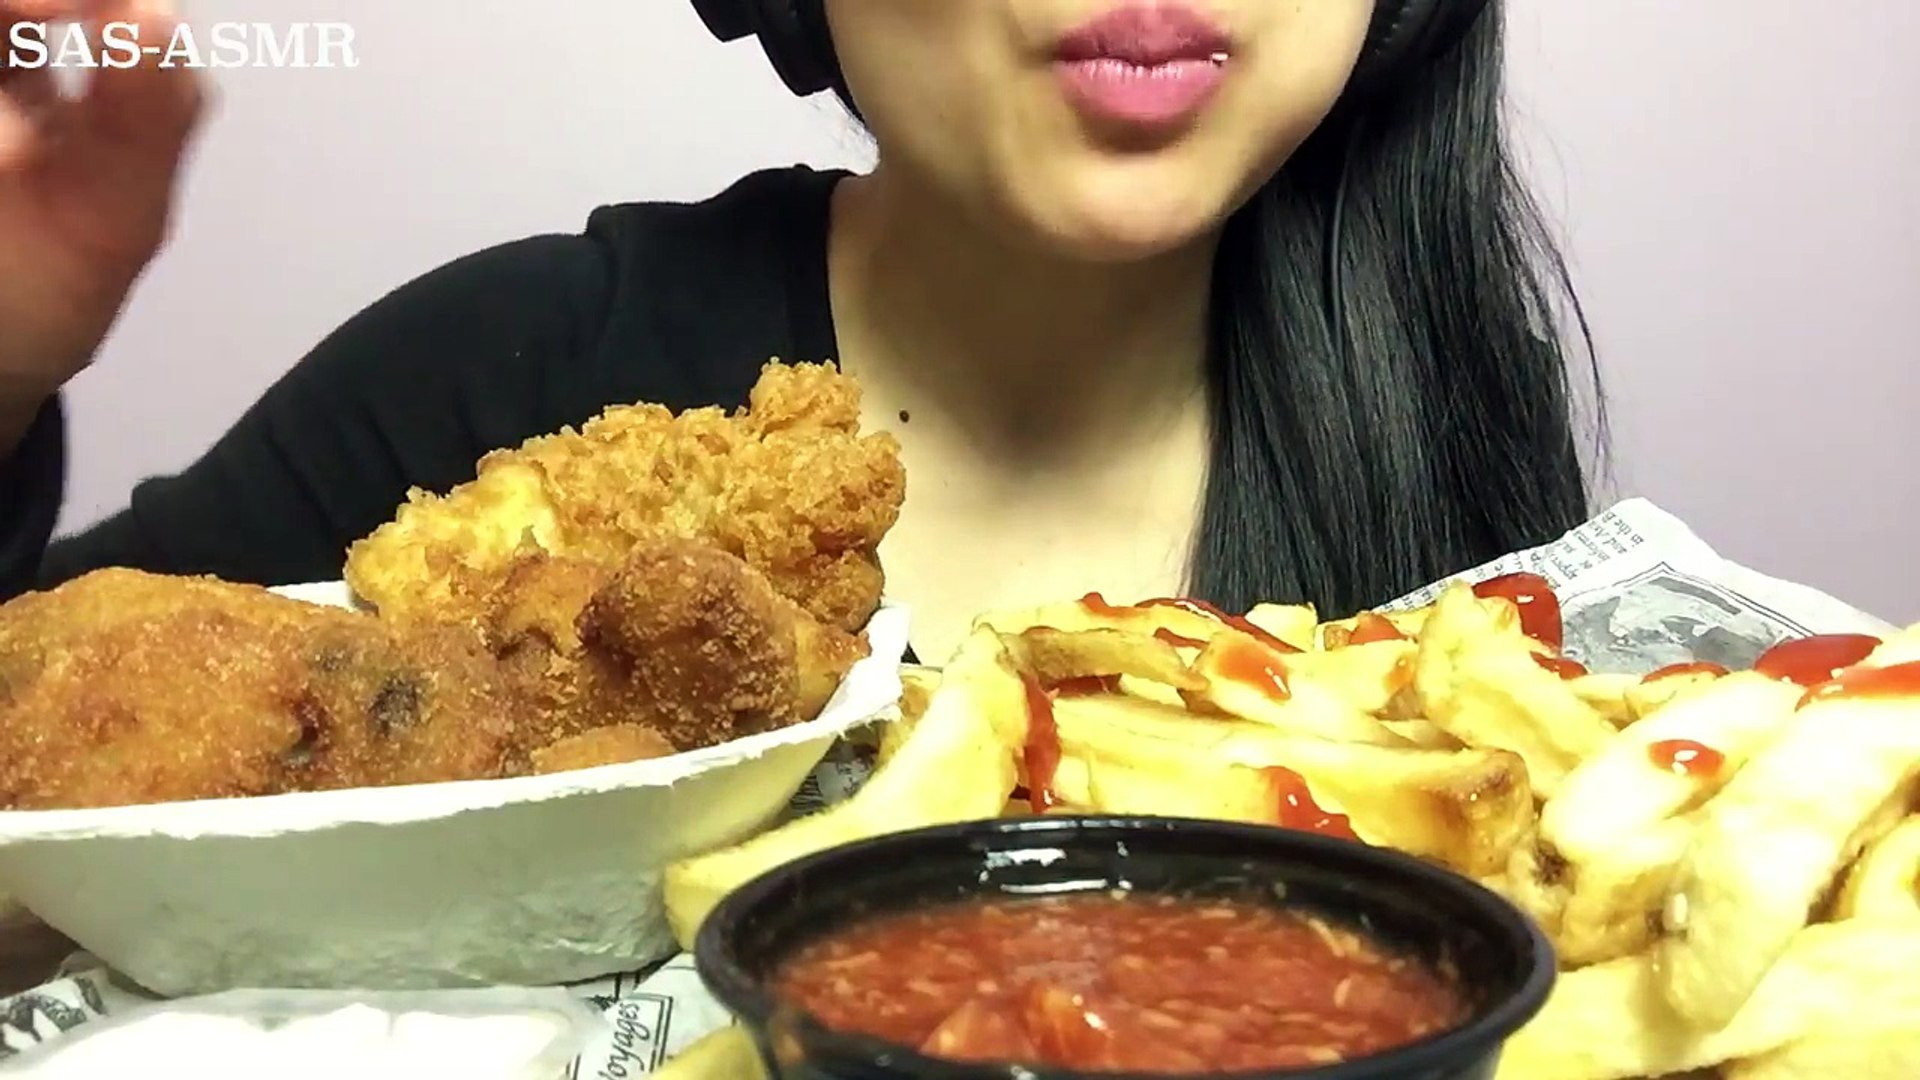 Asmr Deep Fried Oysters Fish Chips Eating Sounds No Talking Sas Asmr Video Dailymotion So initially, it was so hard to choose which video i thought excelled. asmr deep fried oysters fish chips